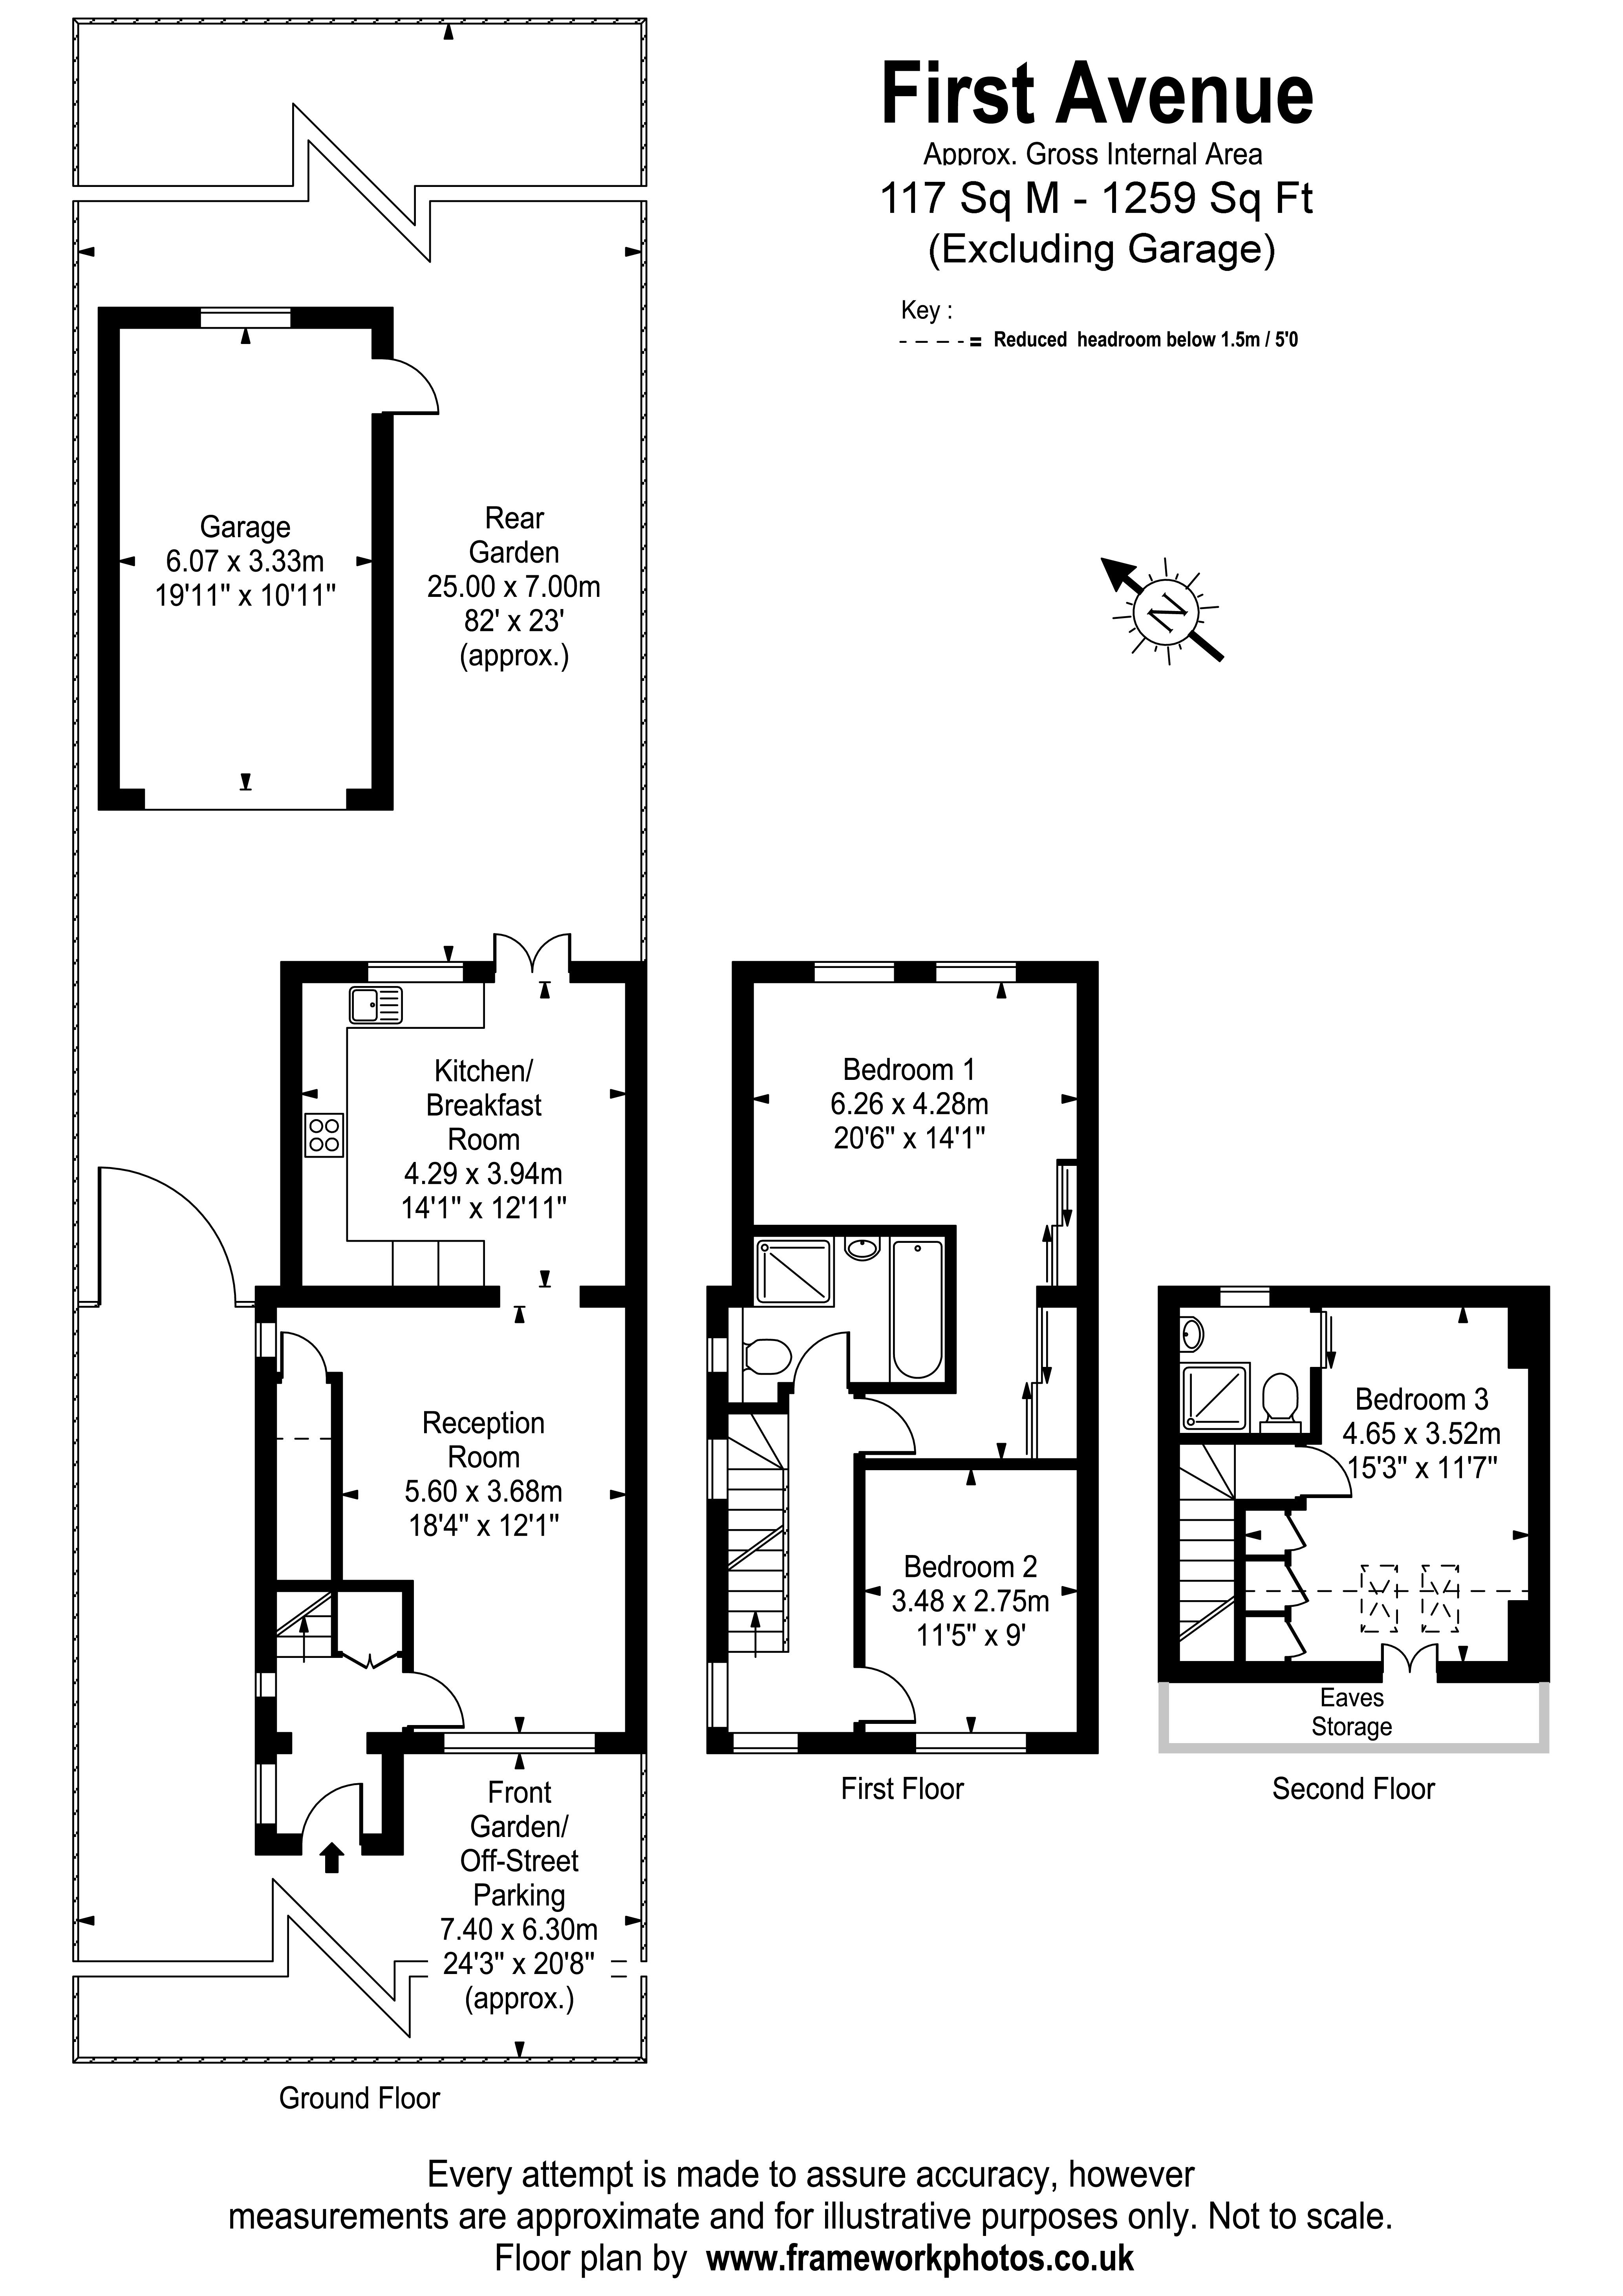 Floorplans For First Avenue, West Molesey